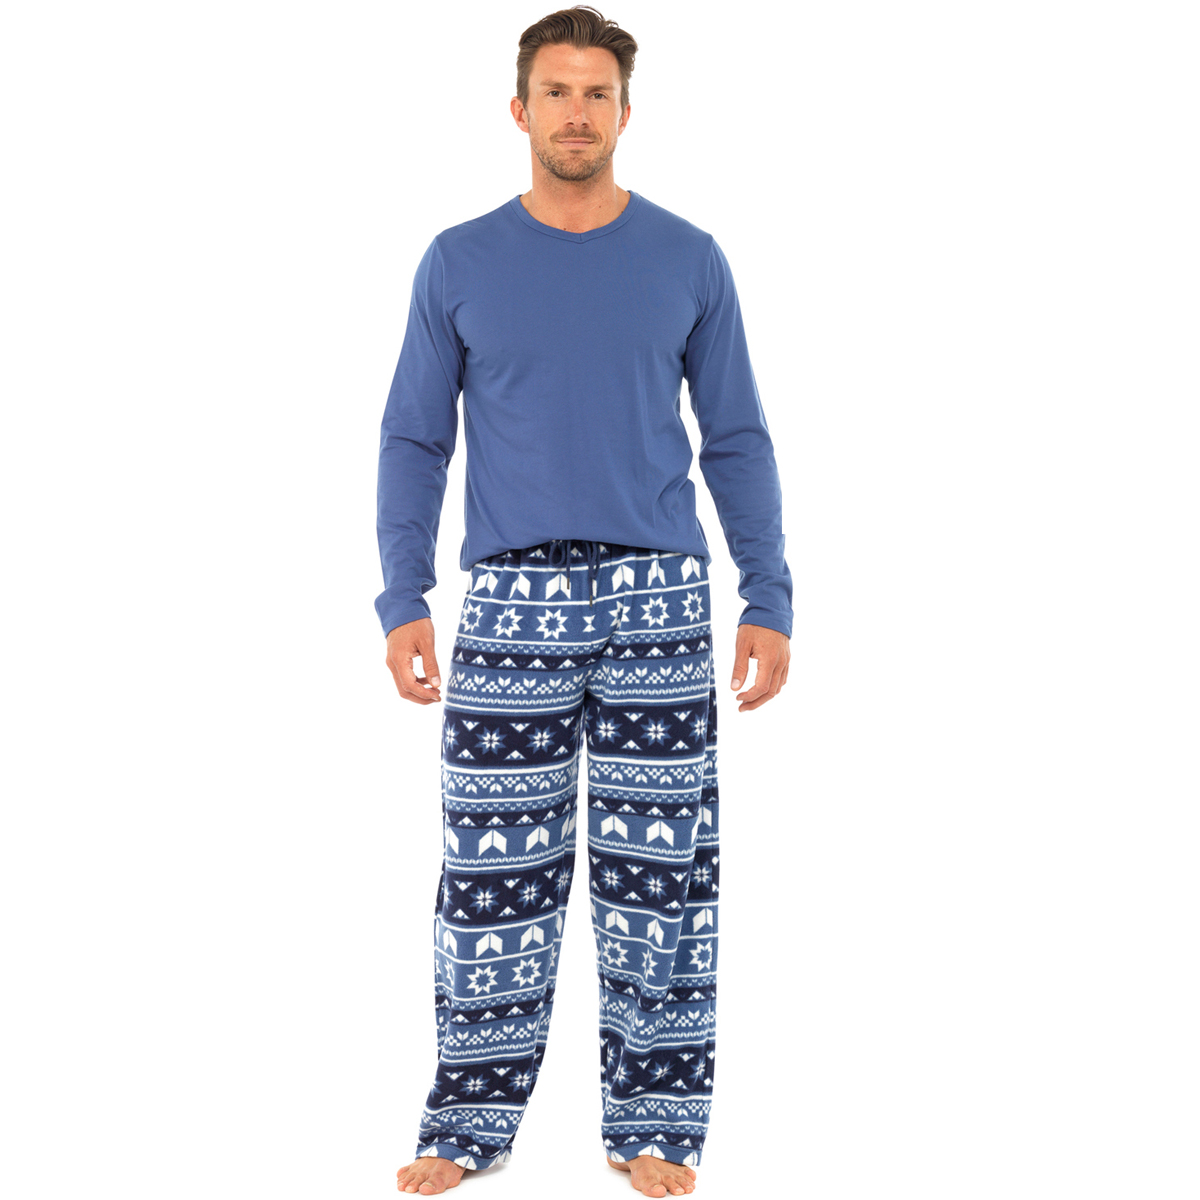 Shop online for Men's Pajamas: Lounge & Sleepwear at newbez.ml Find robes, pajamas & loungewear. Free Shipping. Free Returns. All the time. Skip navigation. Give the card that gives! We donate 1% of all Gift Card sales to local nonprofits. Shop Gift Cards. Designer.